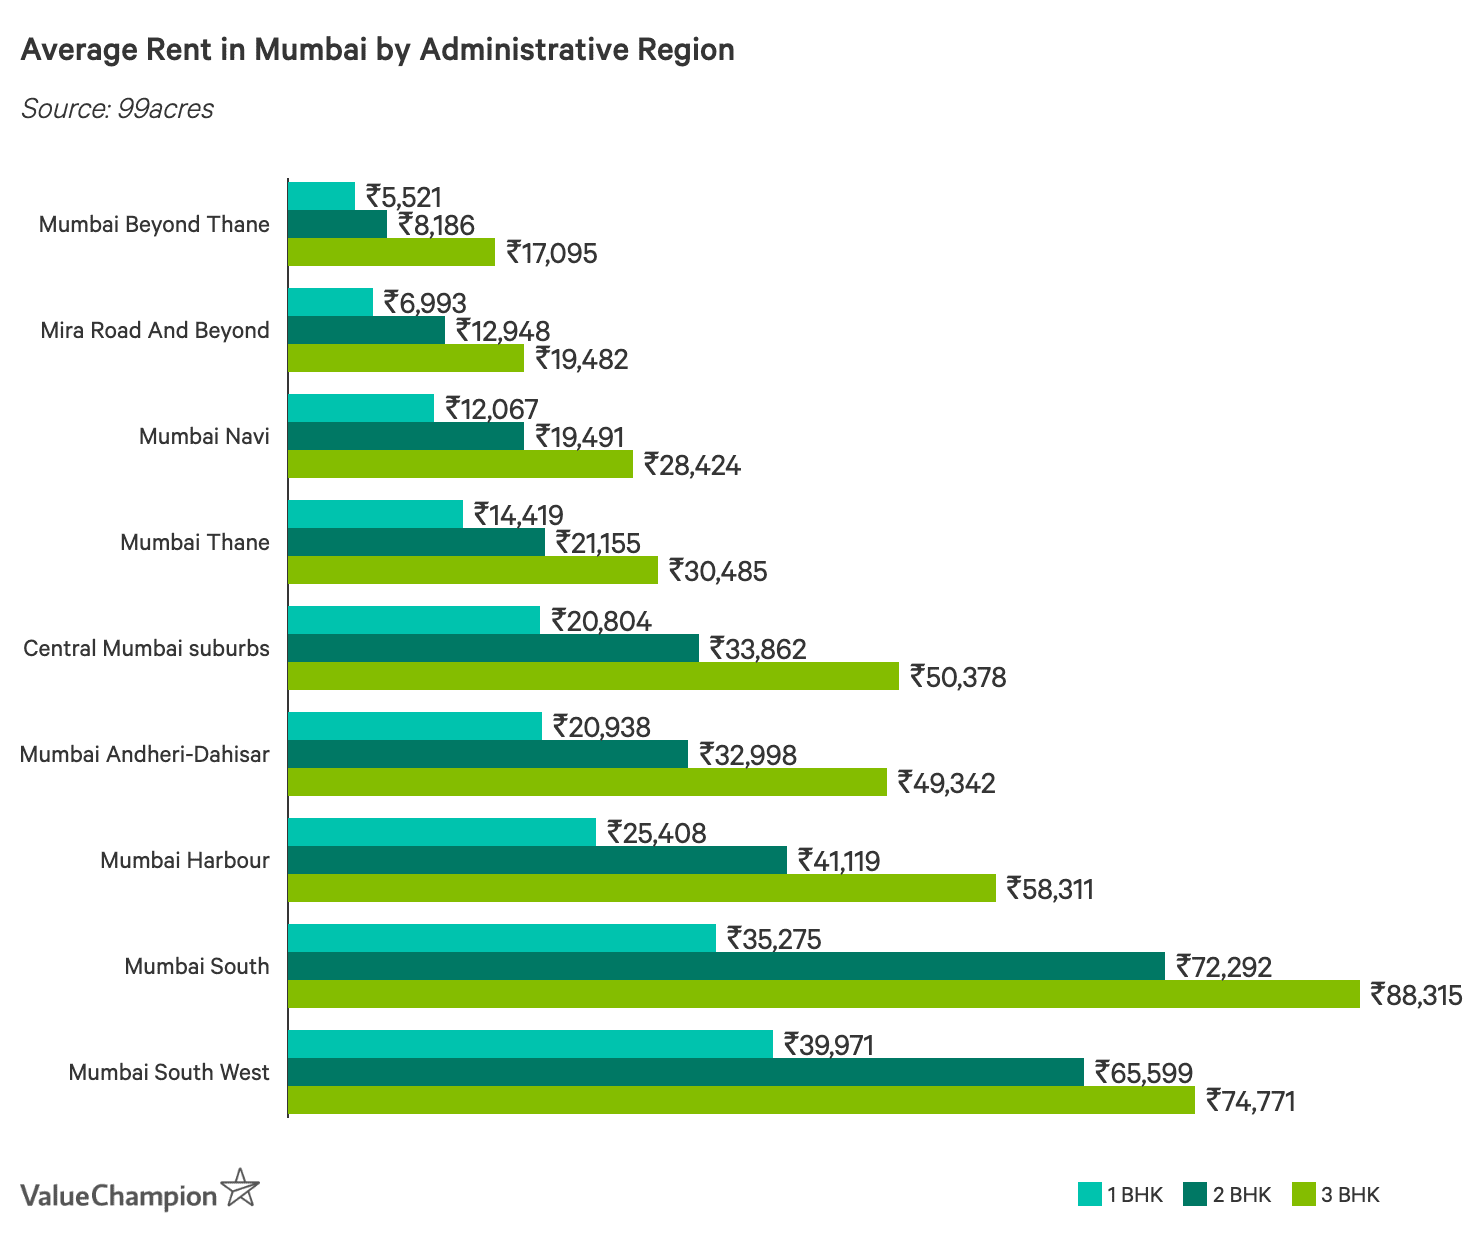 Average Rent in Mumbai by Administrative Region